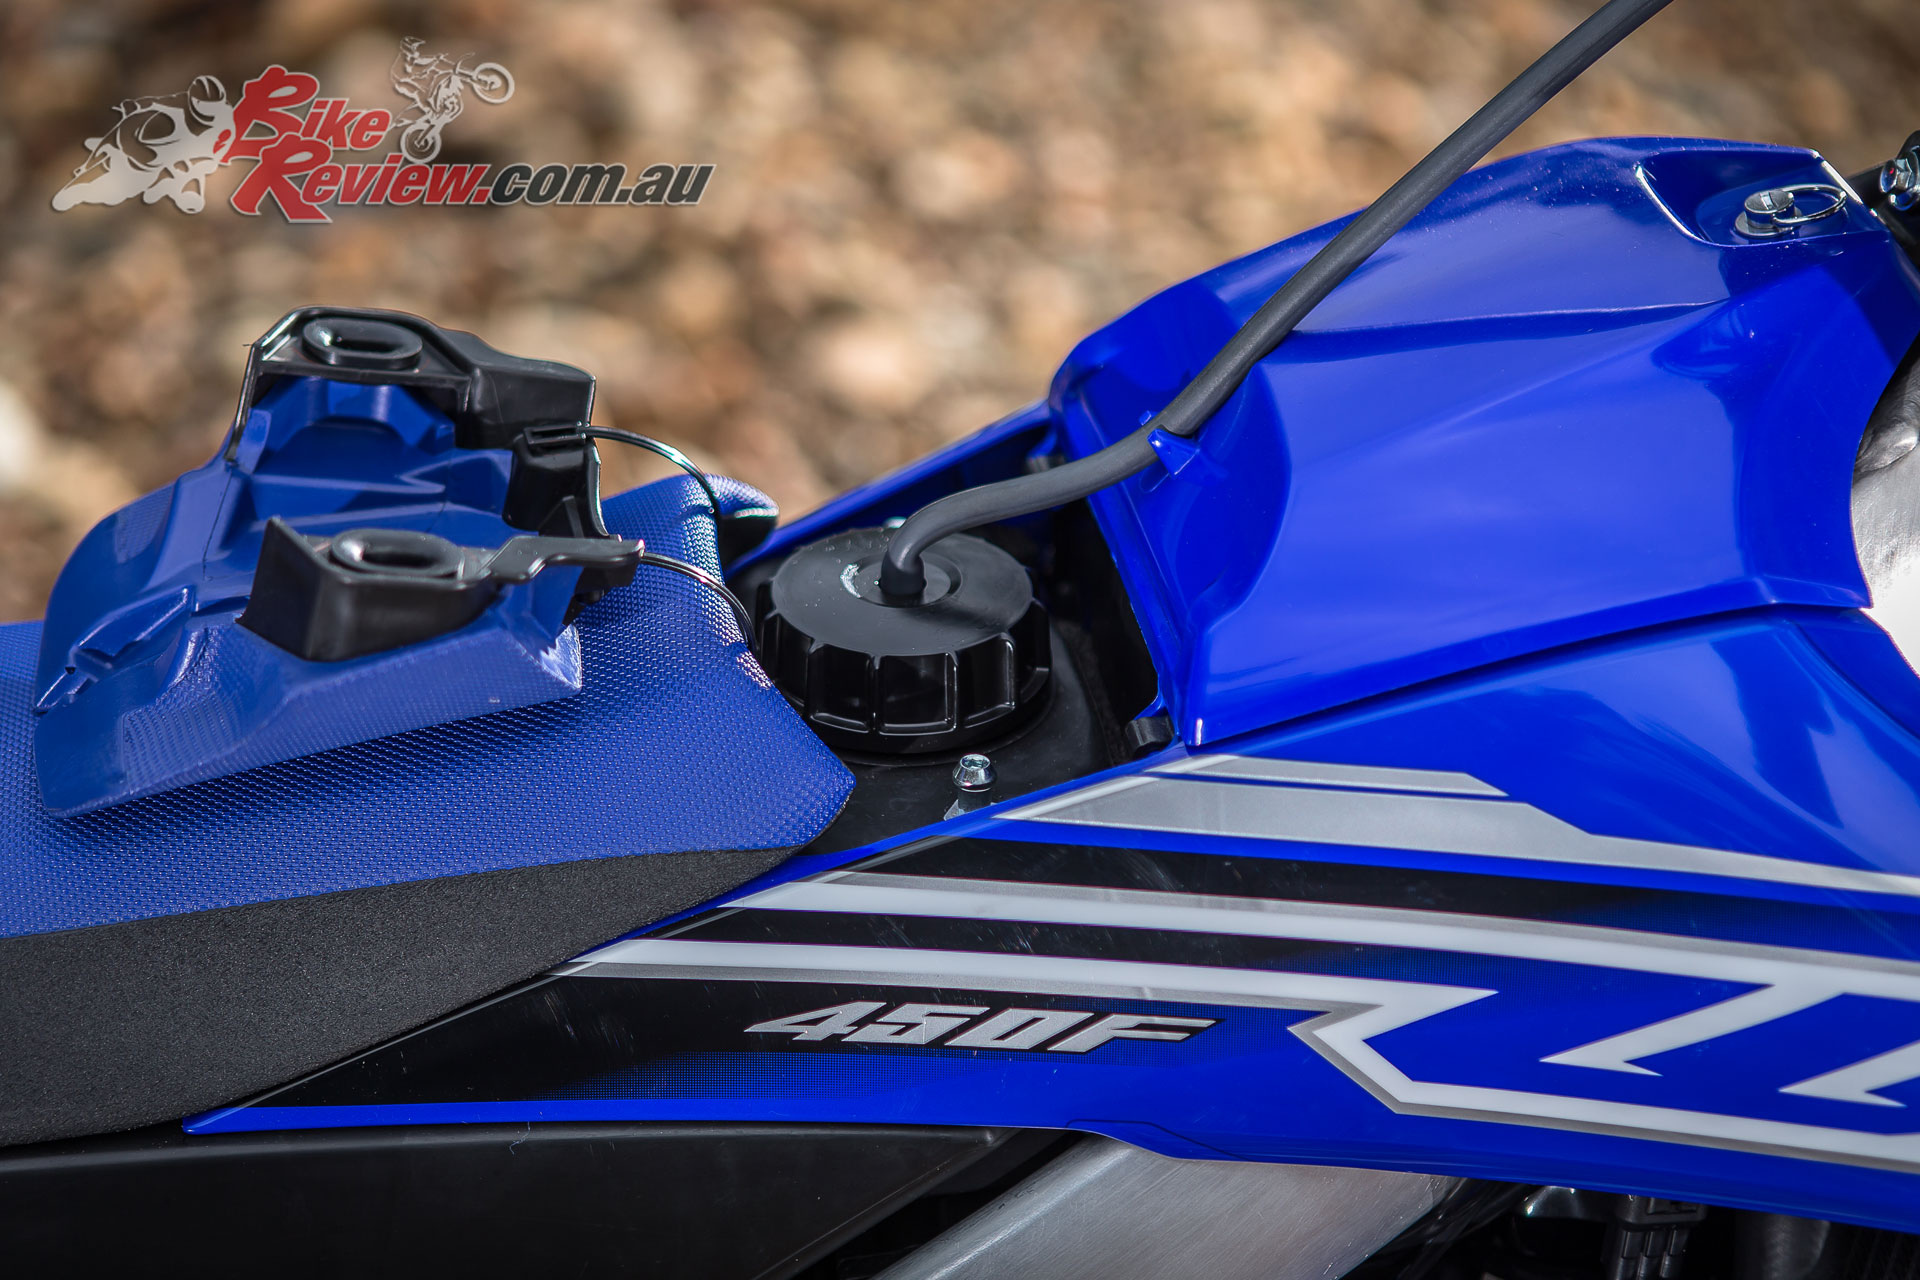 2019 Yamaha WR450F - A larger fuel tank is featured, helping lower the CoG, while the air filter is more accessible